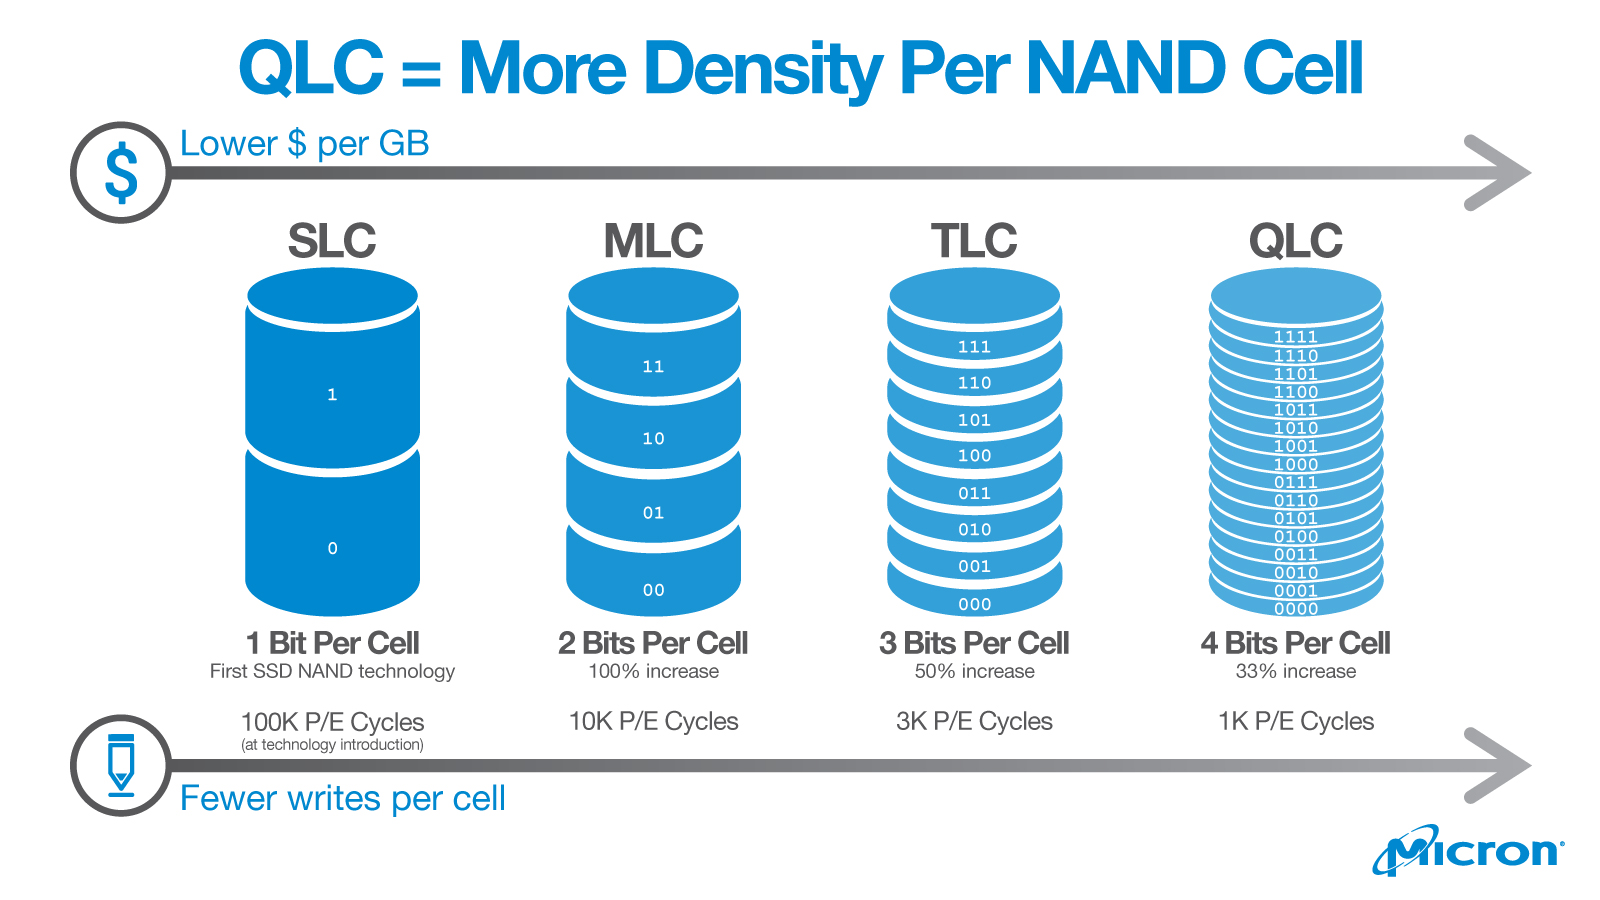 QLC NAND Technology offers more density per NAND cell